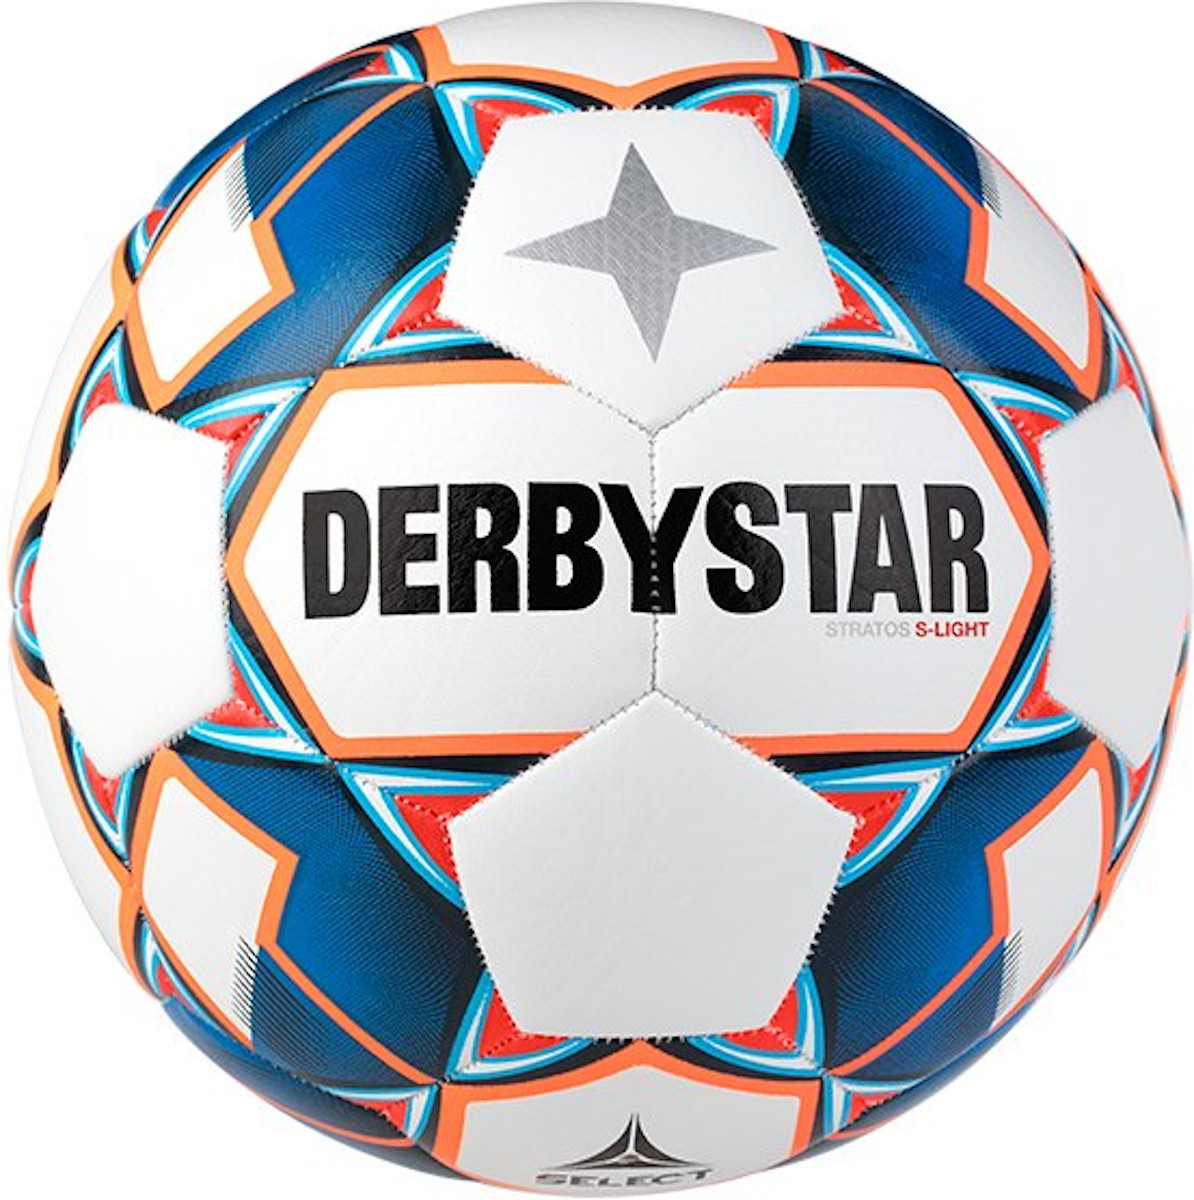 Ballon Derbystar Stratos S-Light v20 290g training ball